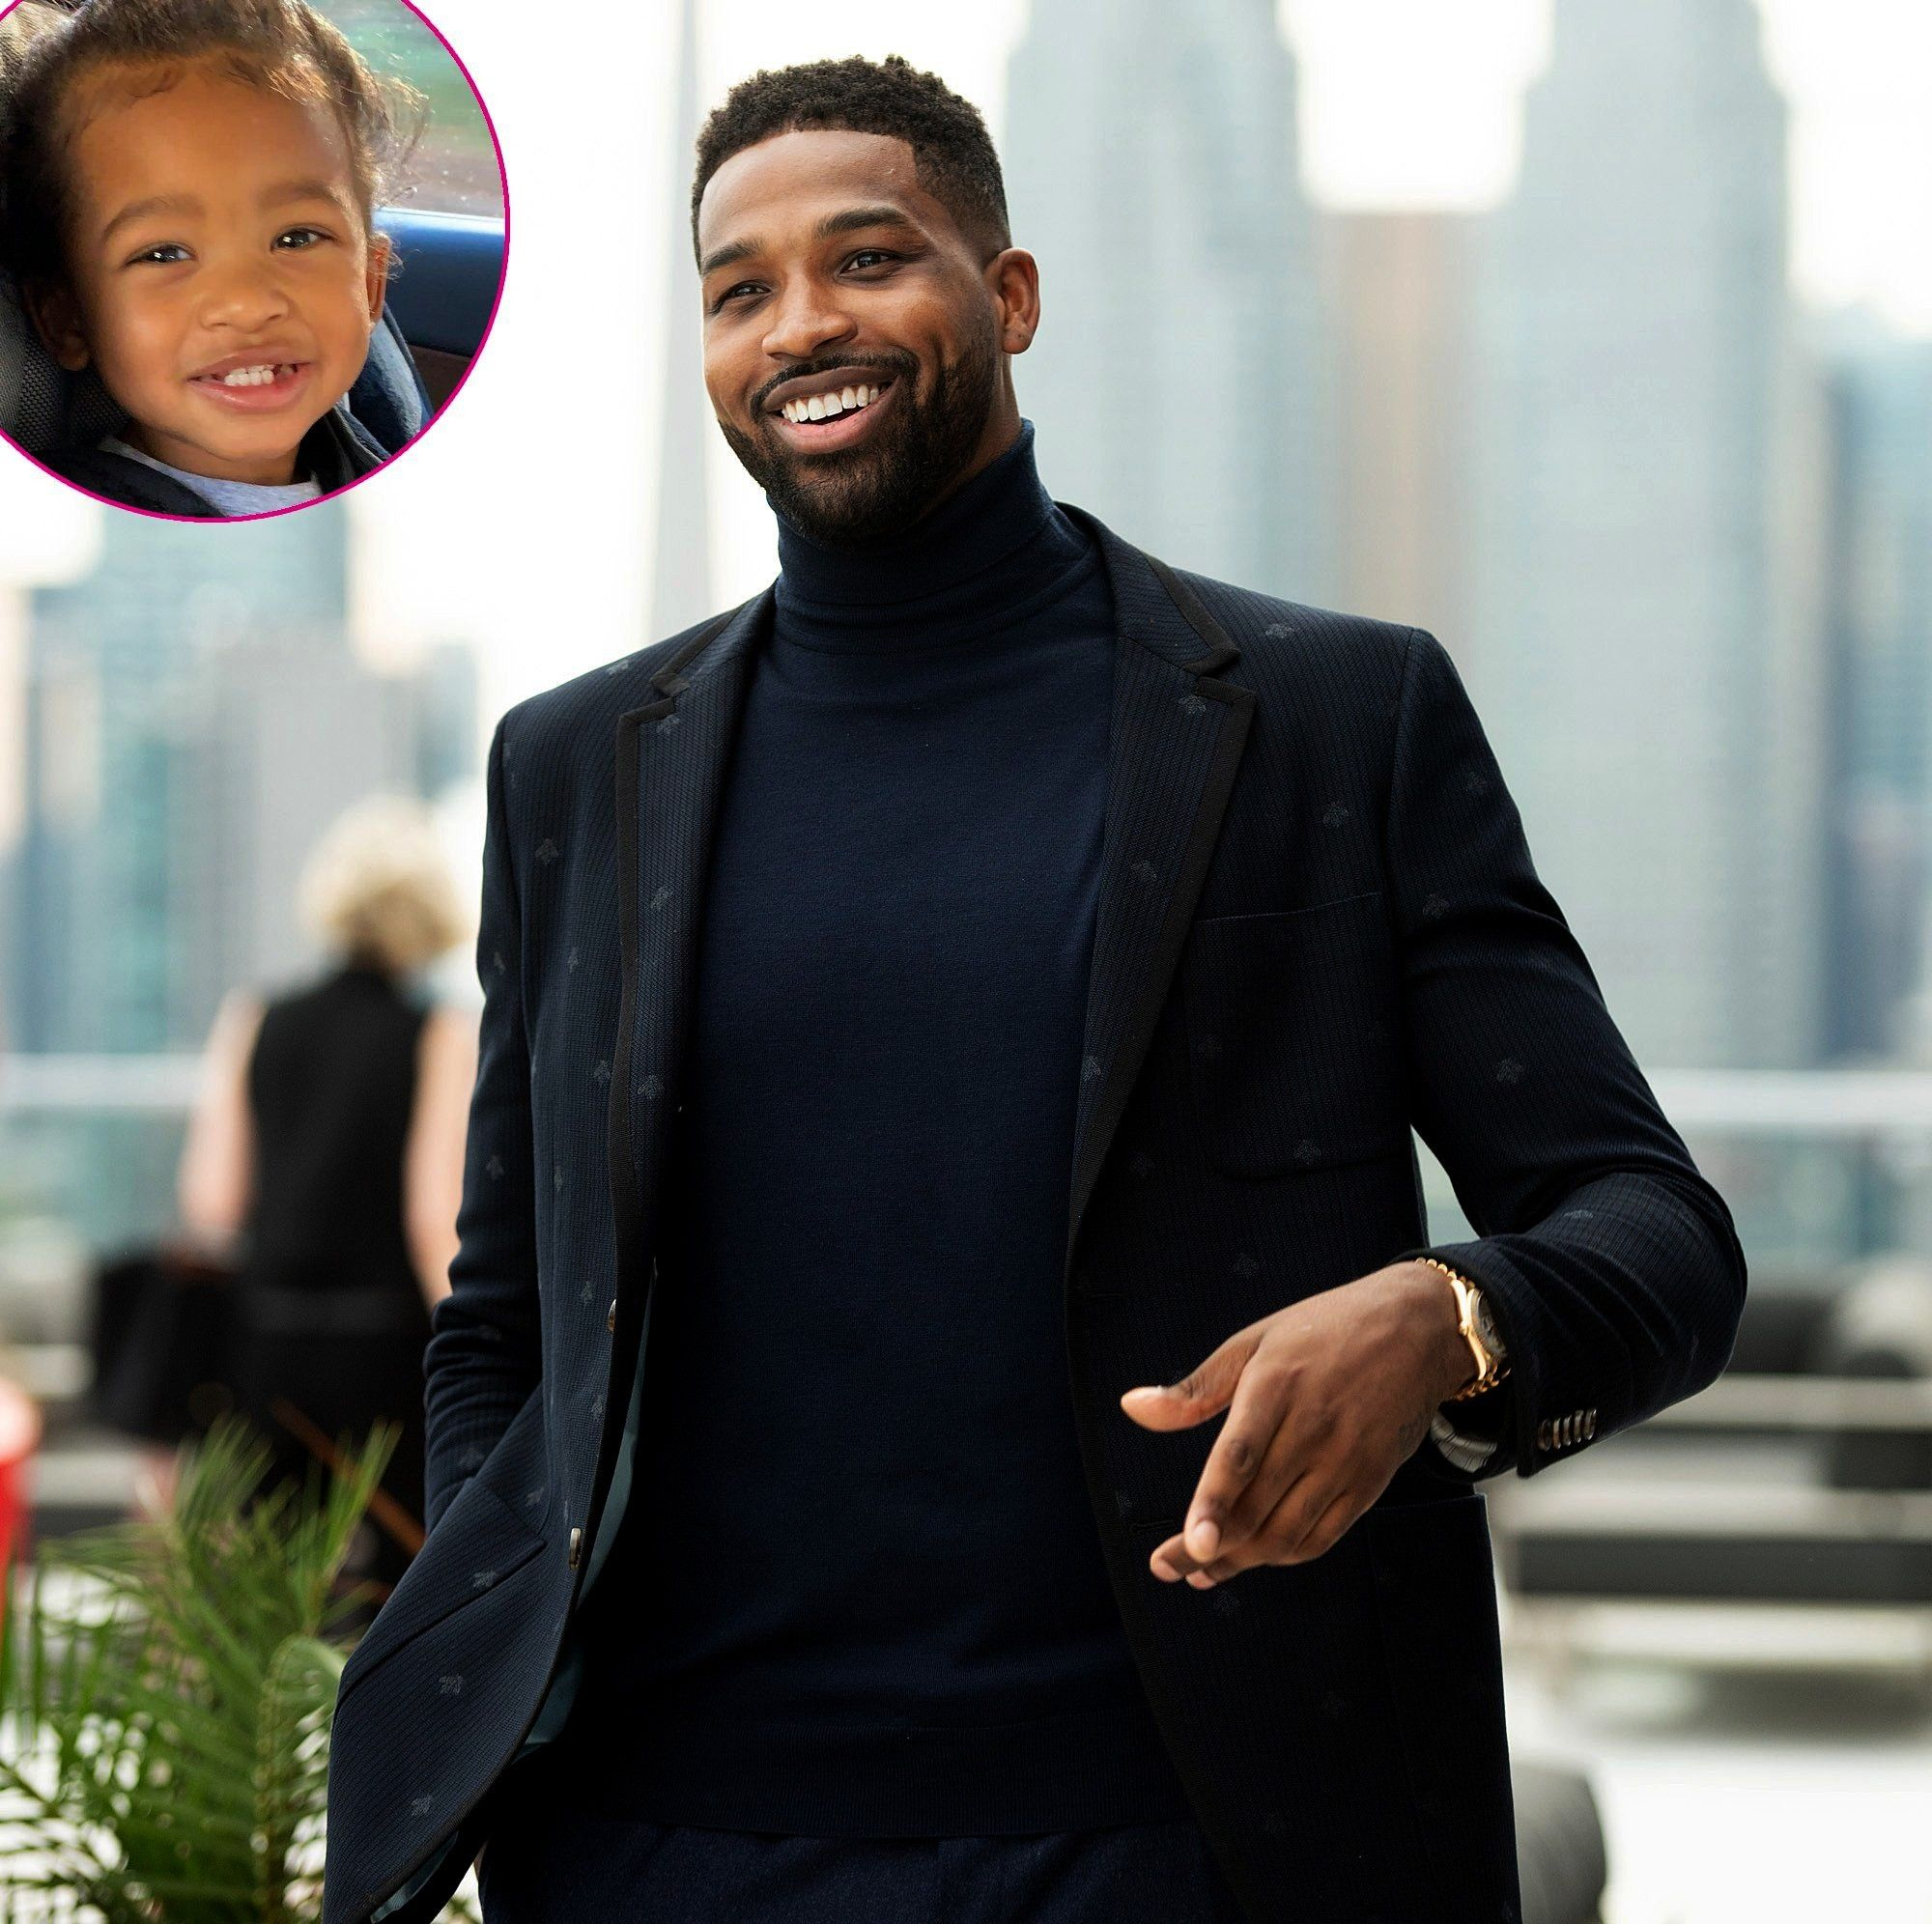 Thompson Shows Love To His Boy Prince For His Birthday  Heres The Proud Dads Message Tristan Thompson Shows Love To His Boy Prince For His Birthday  Heres The Proud Dads...